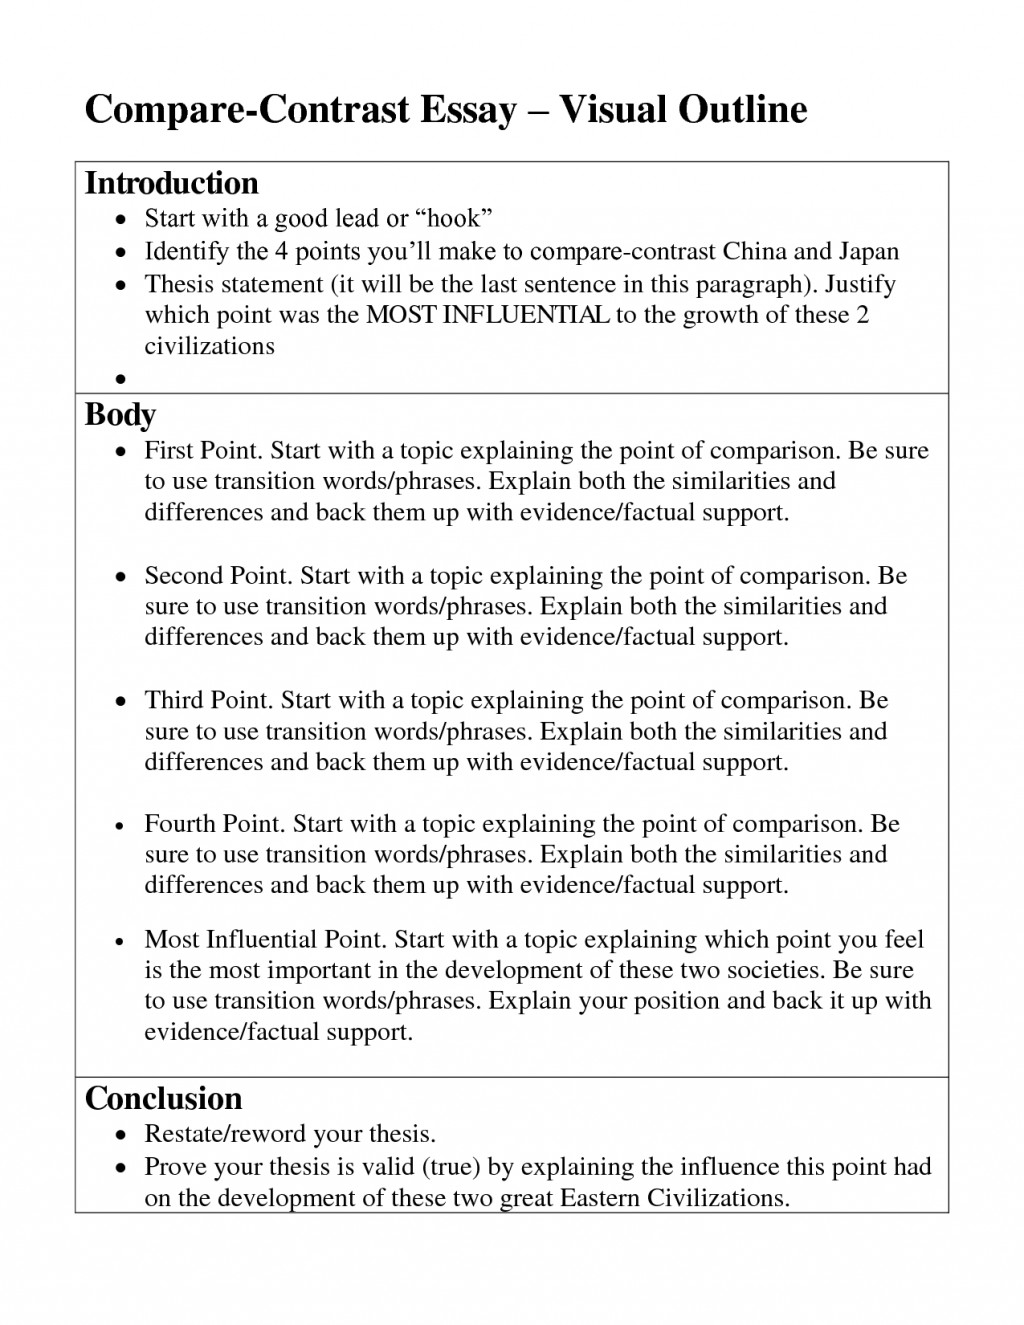 009 Good Compare And Contrast Essay Unbelievable Title Generator Examples High School Titles Large